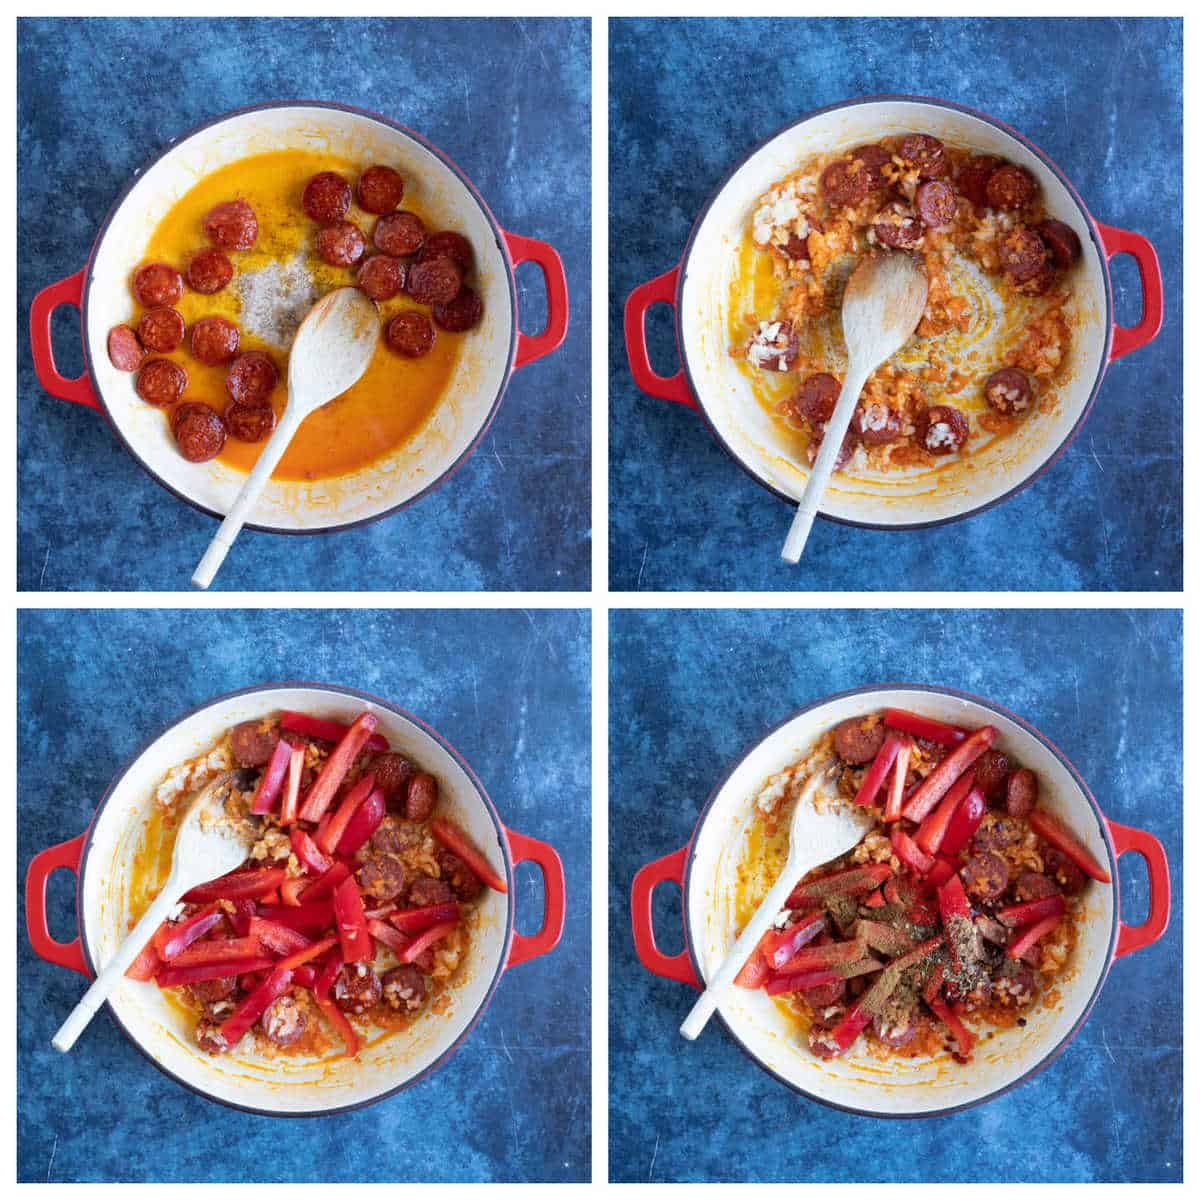 Step by step instructions for making mild chilli for kids part 1.